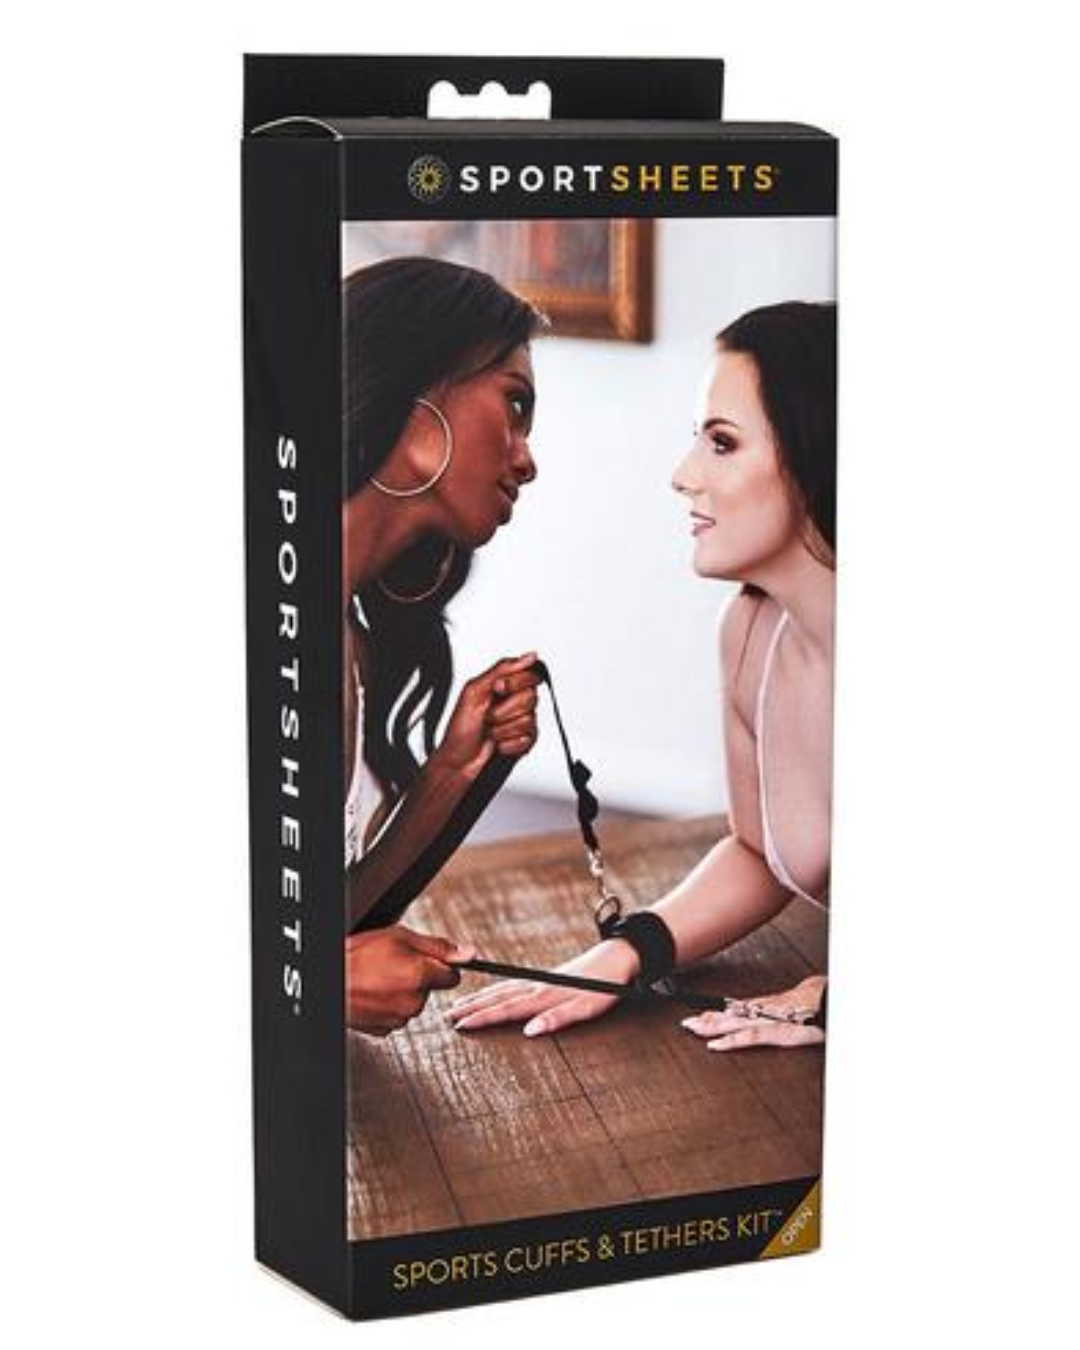 Sports Cuffs & Tethers Restraints Kit by Sportsheets box